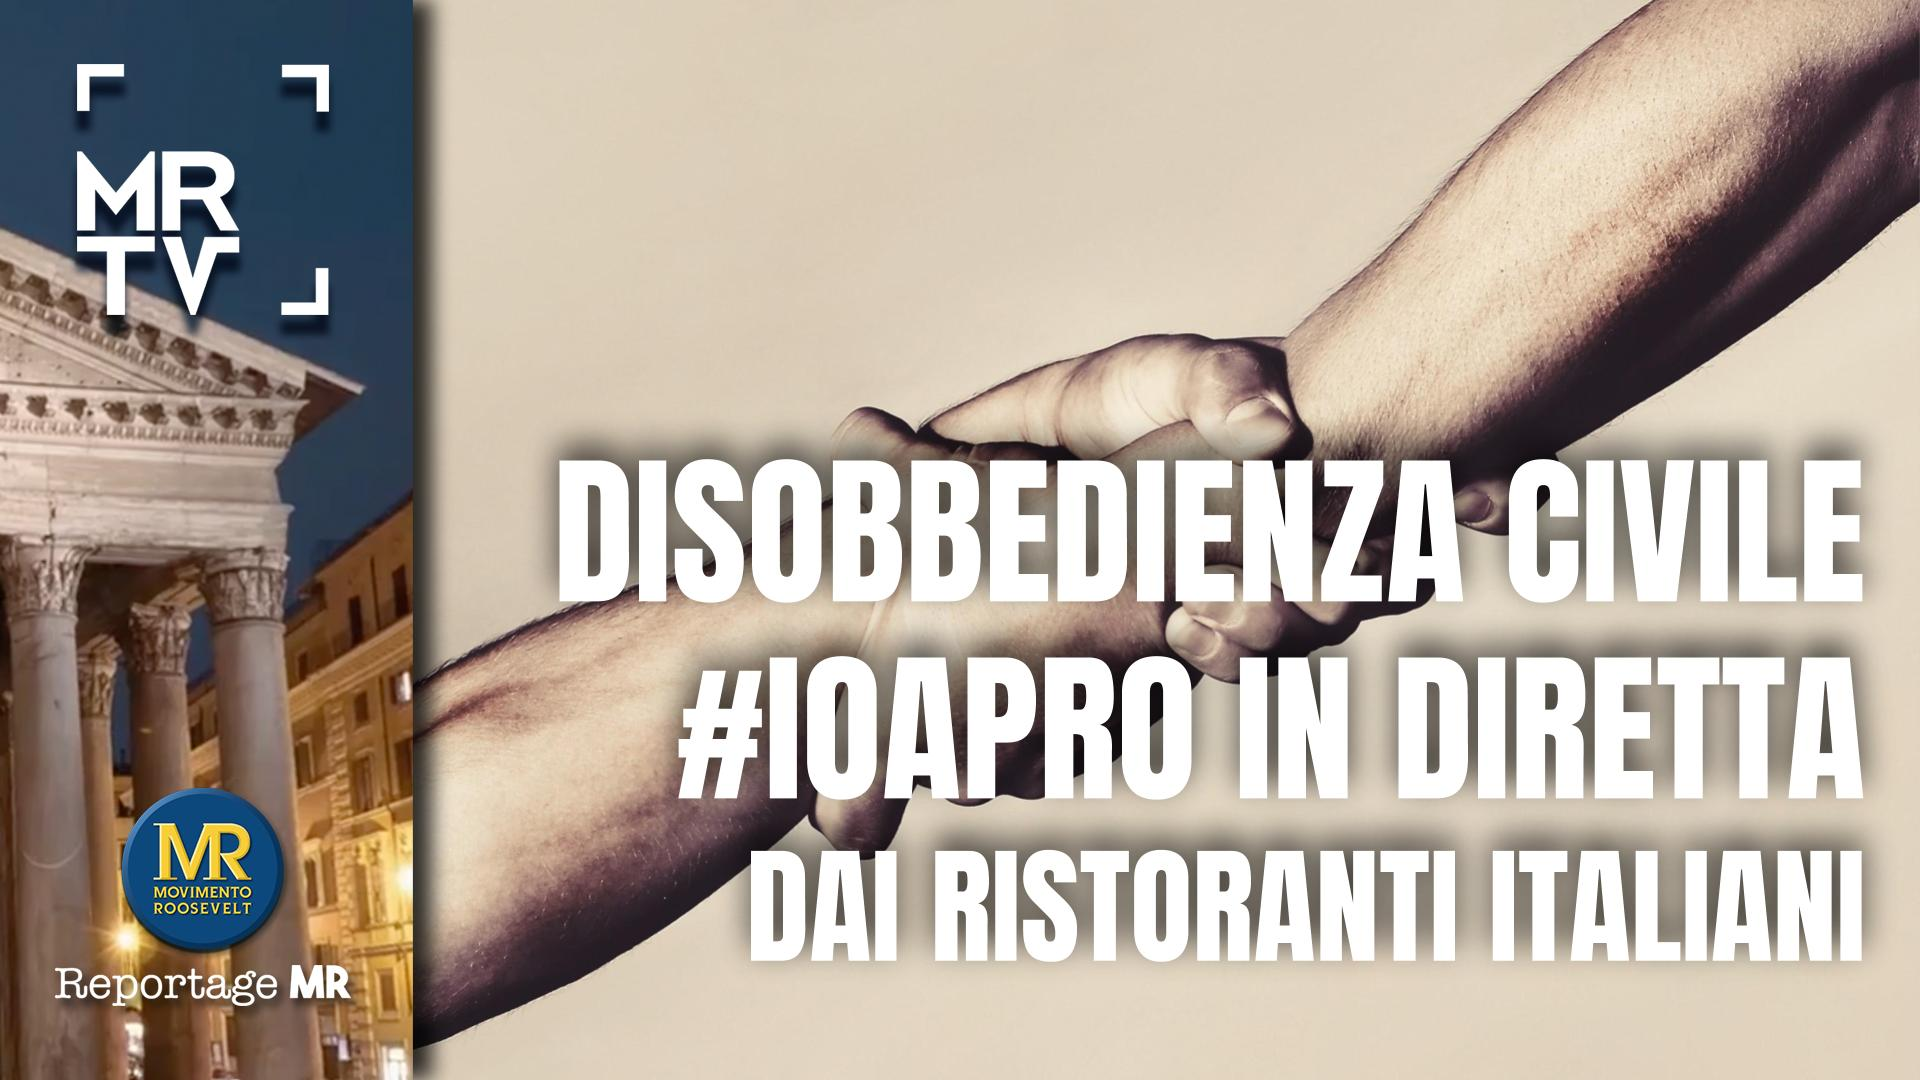 disobbedienza civile 1 2e548